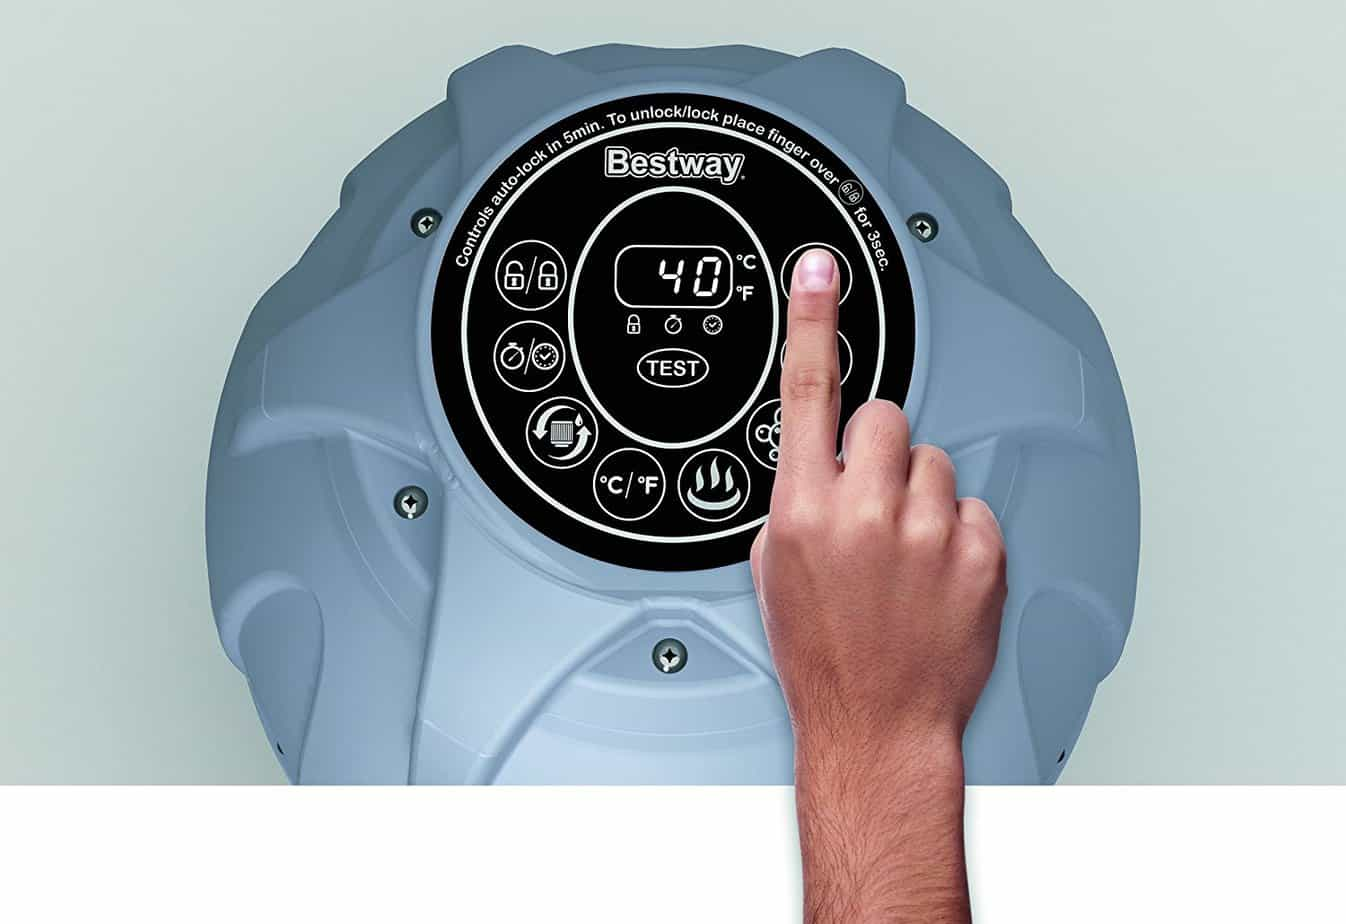 Lay-Z-Spa Miami inflatable hot tub touch screen controls